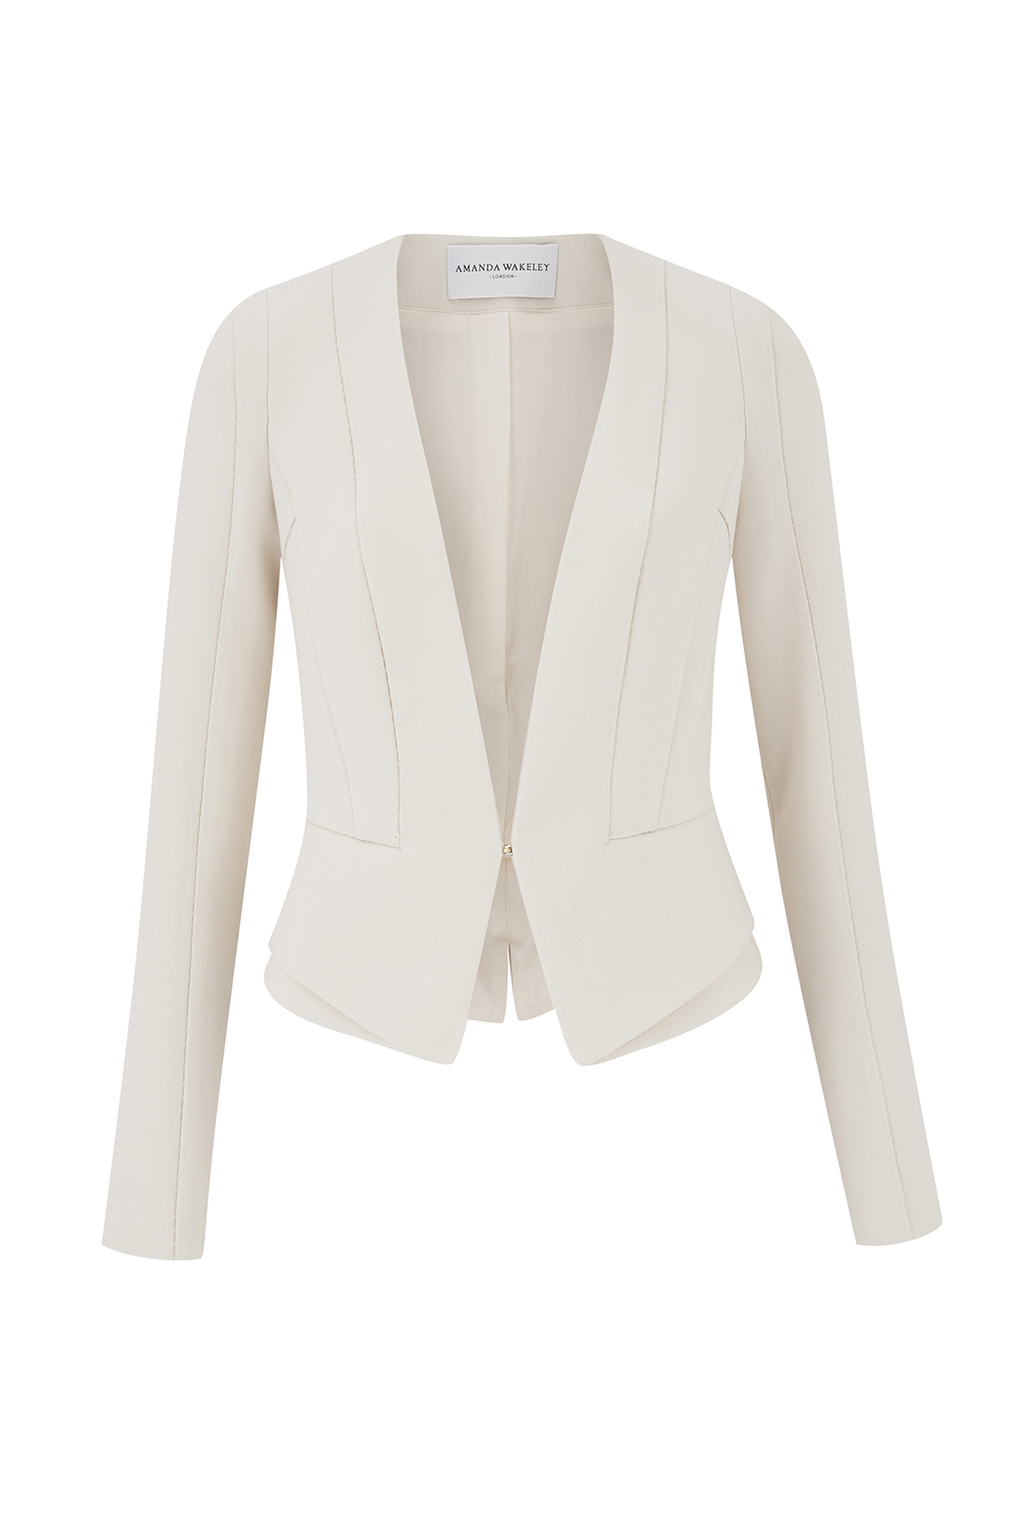 Midtown Cream Tailored Jacket - pattern: plain; style: single breasted blazer; collar: round collar/collarless; predominant colour: ivory/cream; length: standard; fit: tailored/fitted; fibres: polyester/polyamide - mix; occasions: occasion; sleeve length: long sleeve; sleeve style: standard; texture group: crepes; collar break: low/open; pattern type: fabric; season: a/w 2016